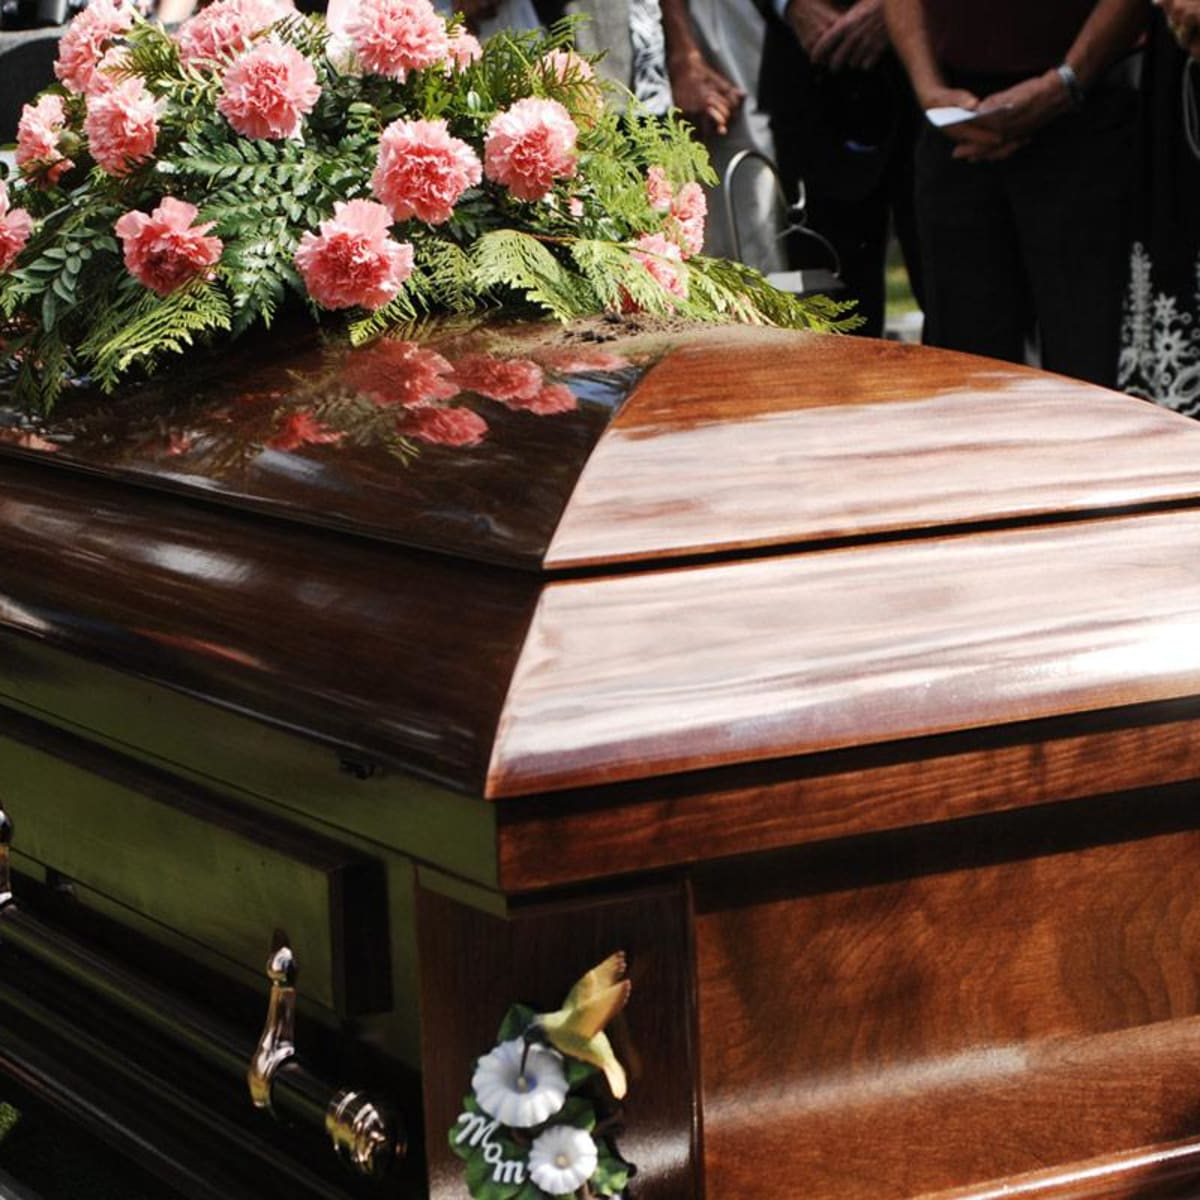 Significant Financial Losses for Funeral Providers during COVID-19